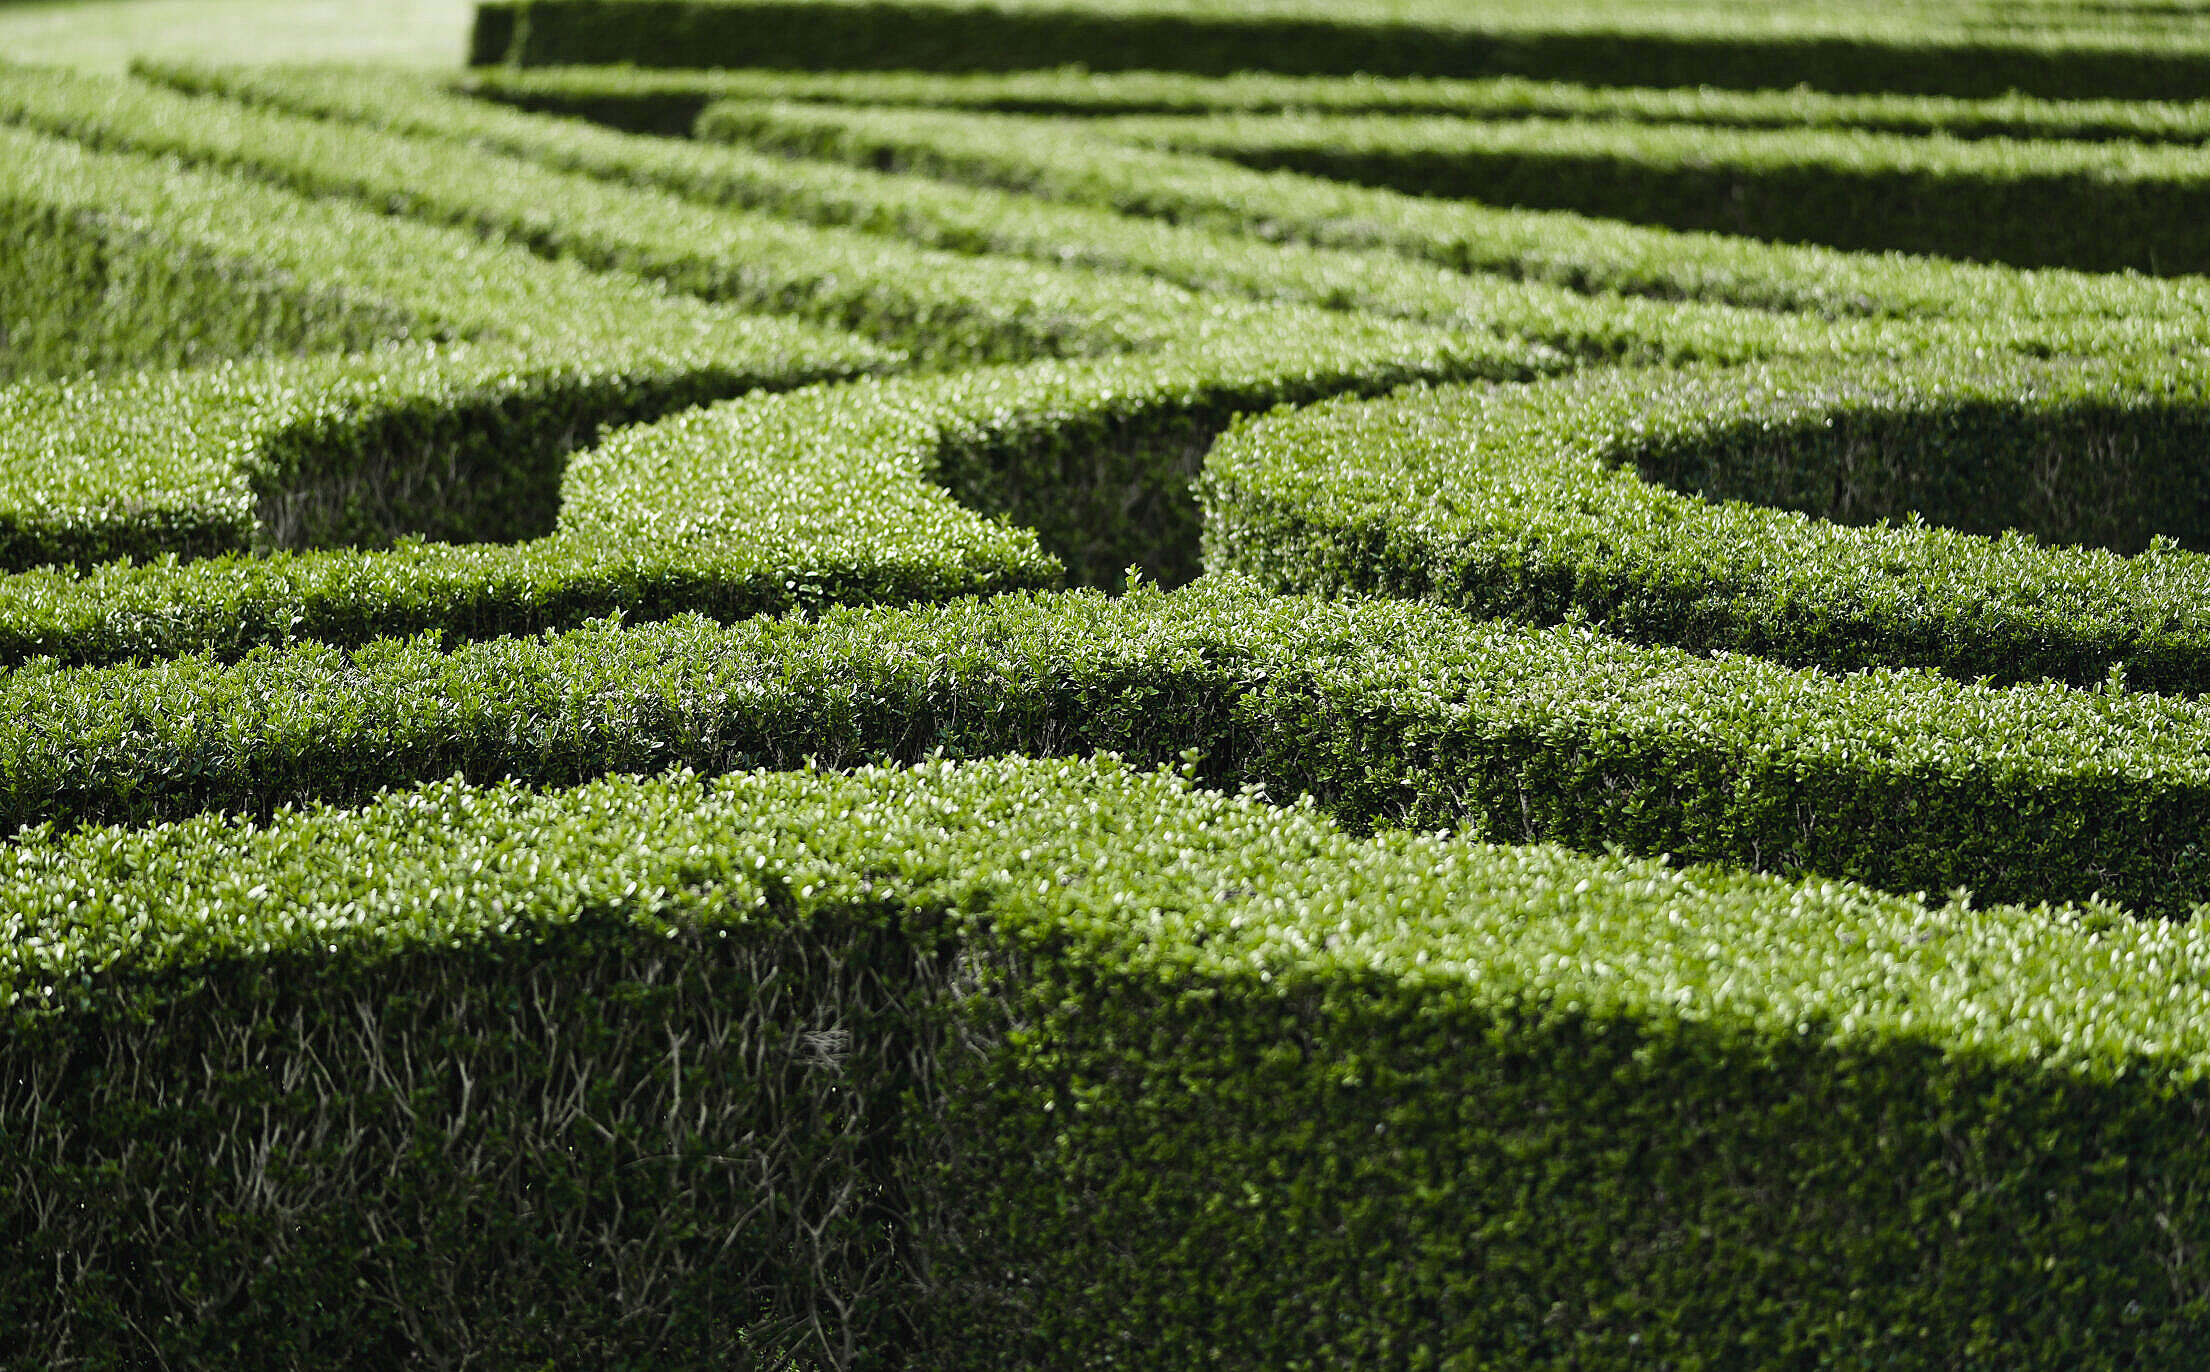 Ornamental Garden with Hedges of Buxus Free Stock Photo